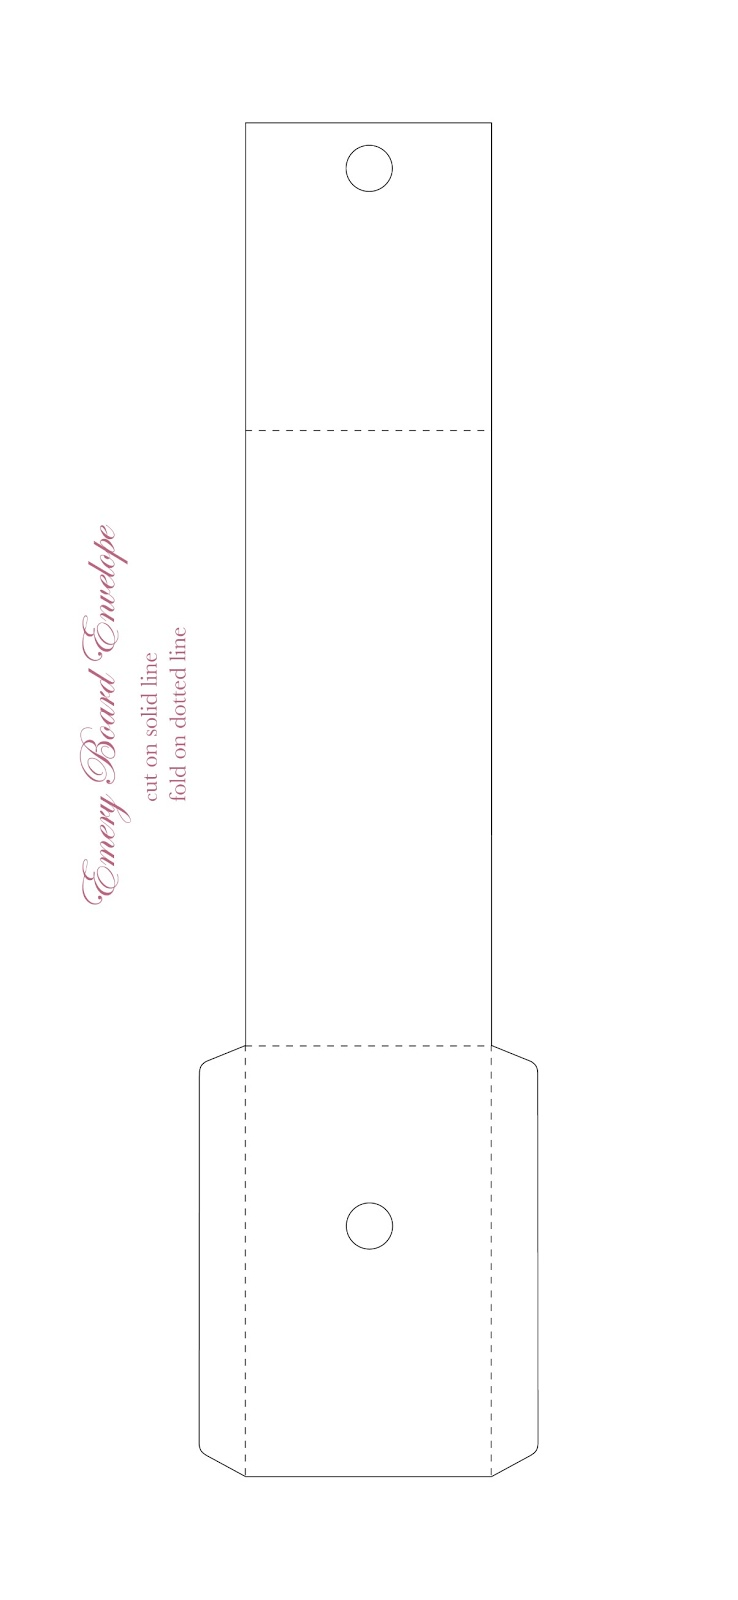 Kell belle studio june 2013 for Legal size envelope template